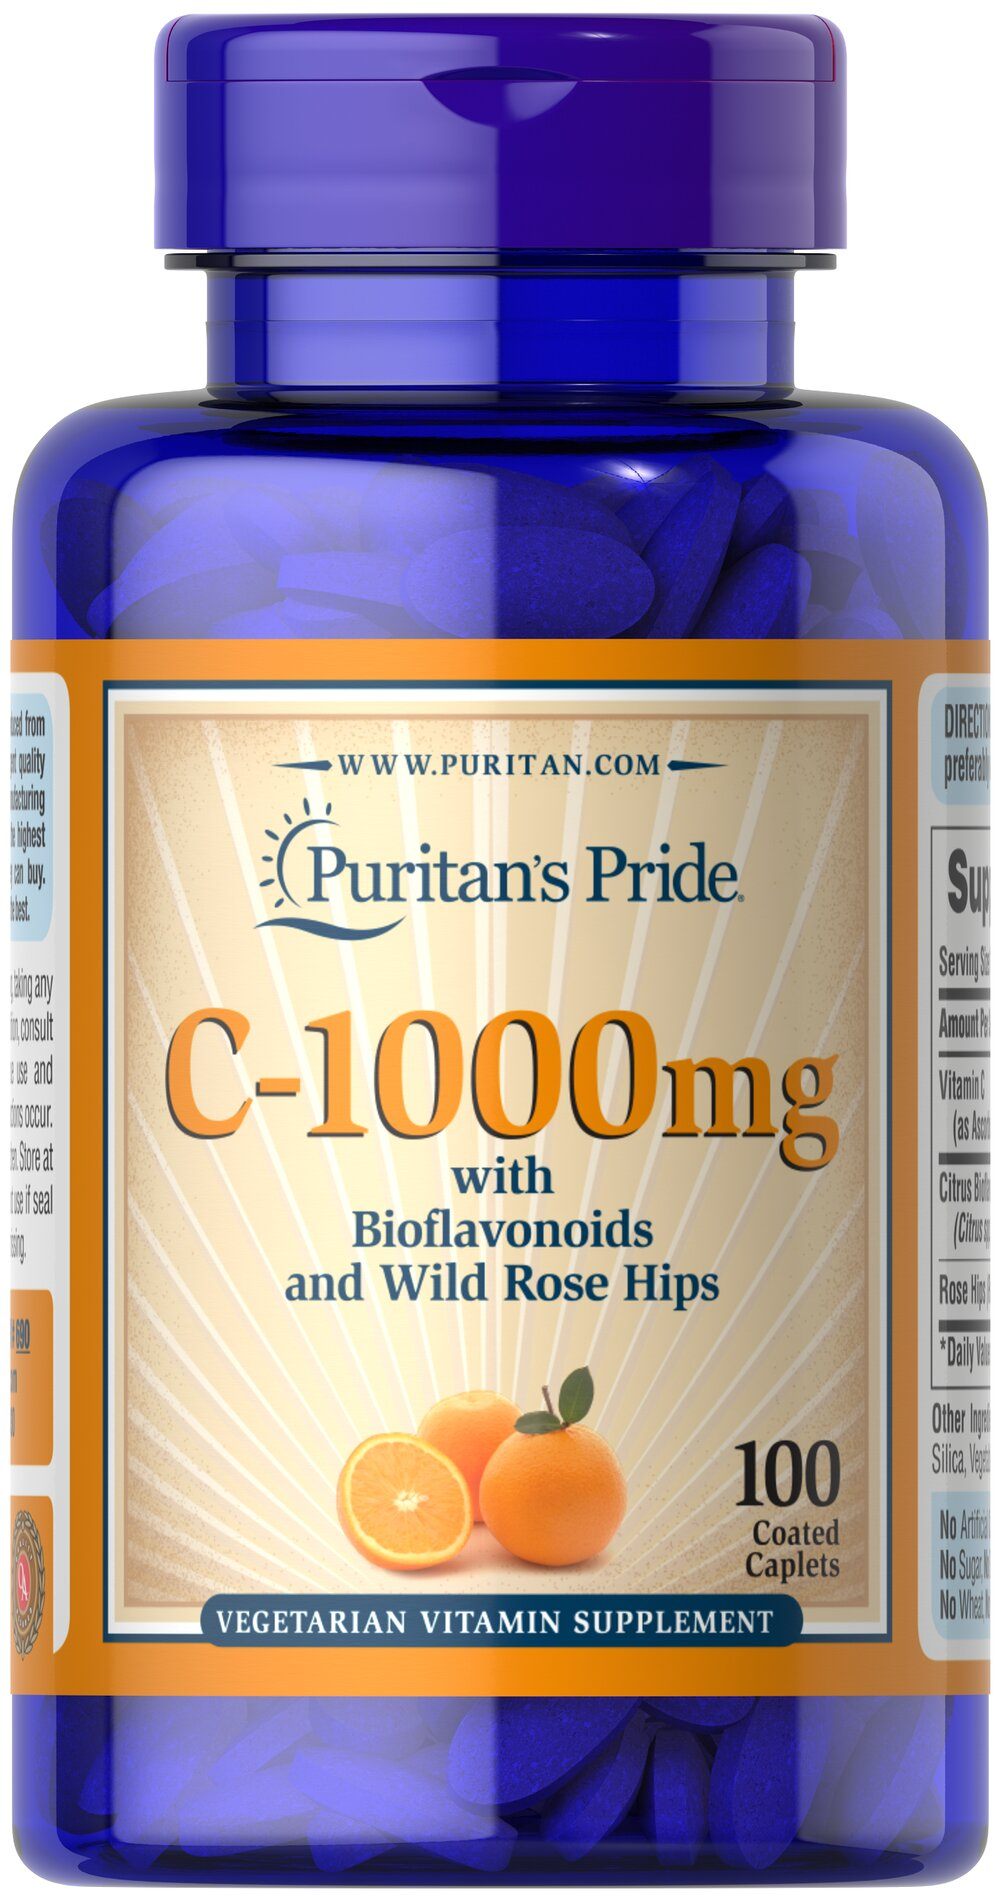 Vitamin C-1000 mg with Bioflavonoids & Rose Hips <p>Vitamin C is essential to many functions in the body and is one of the leading vitamins for immune support and helps fight cell-damaging free radicals.** Our product also includes Rose Hips, which help the body absorb and utilize Vitamin C.**</p><p>Offers superior antioxidant support.**</p><p>Supports healthy immune function and promotes well-being.**</p> 100 Caplets 1000 mg $7.68